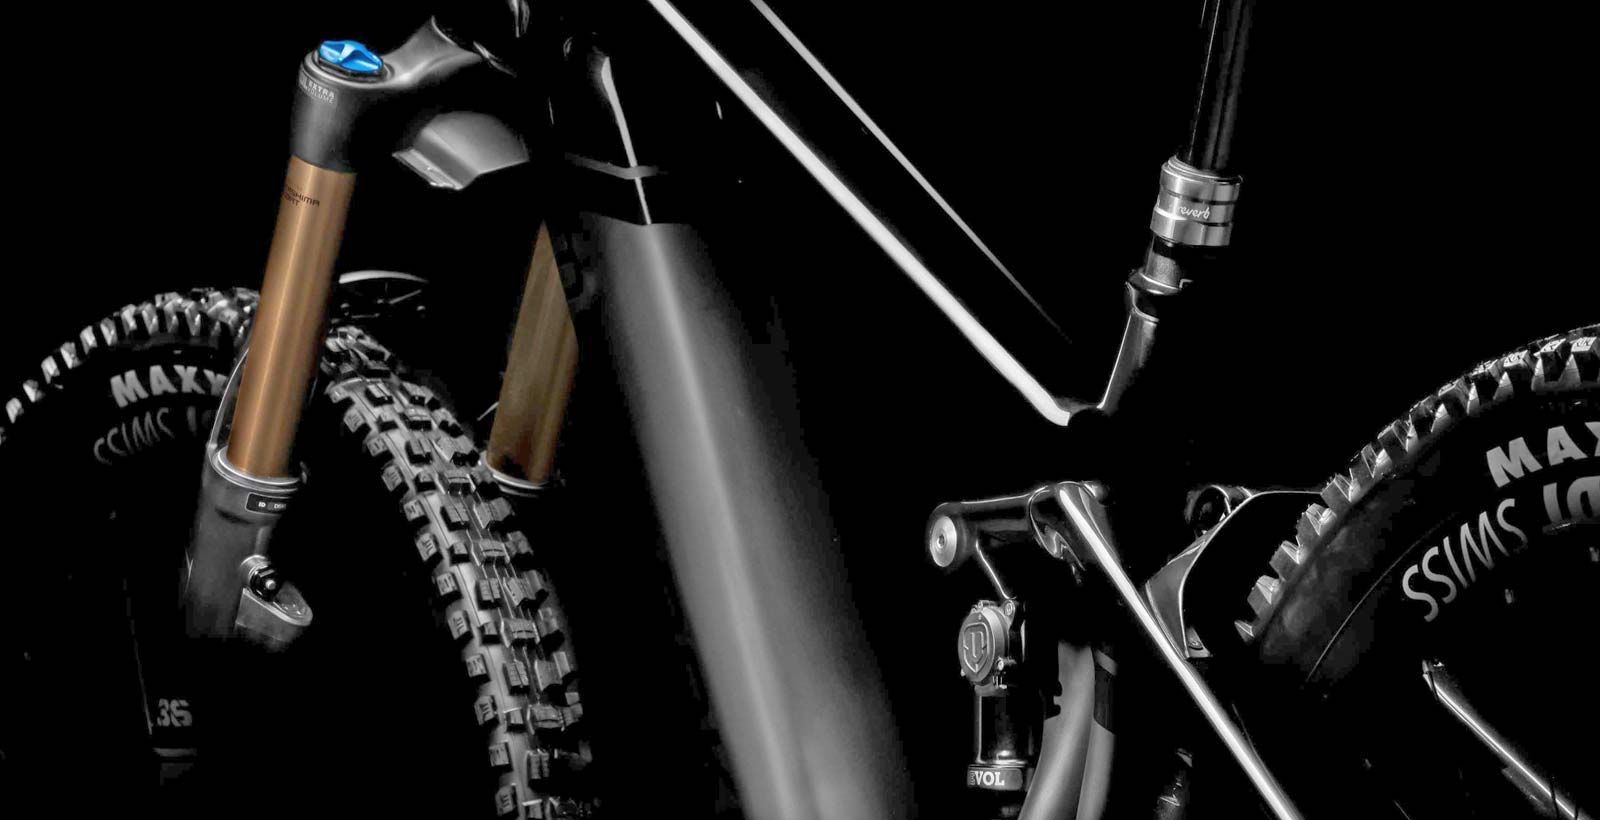 Mondraker MIND integrated telemetry tracking system suspension setup and analysis,rear angled teaser